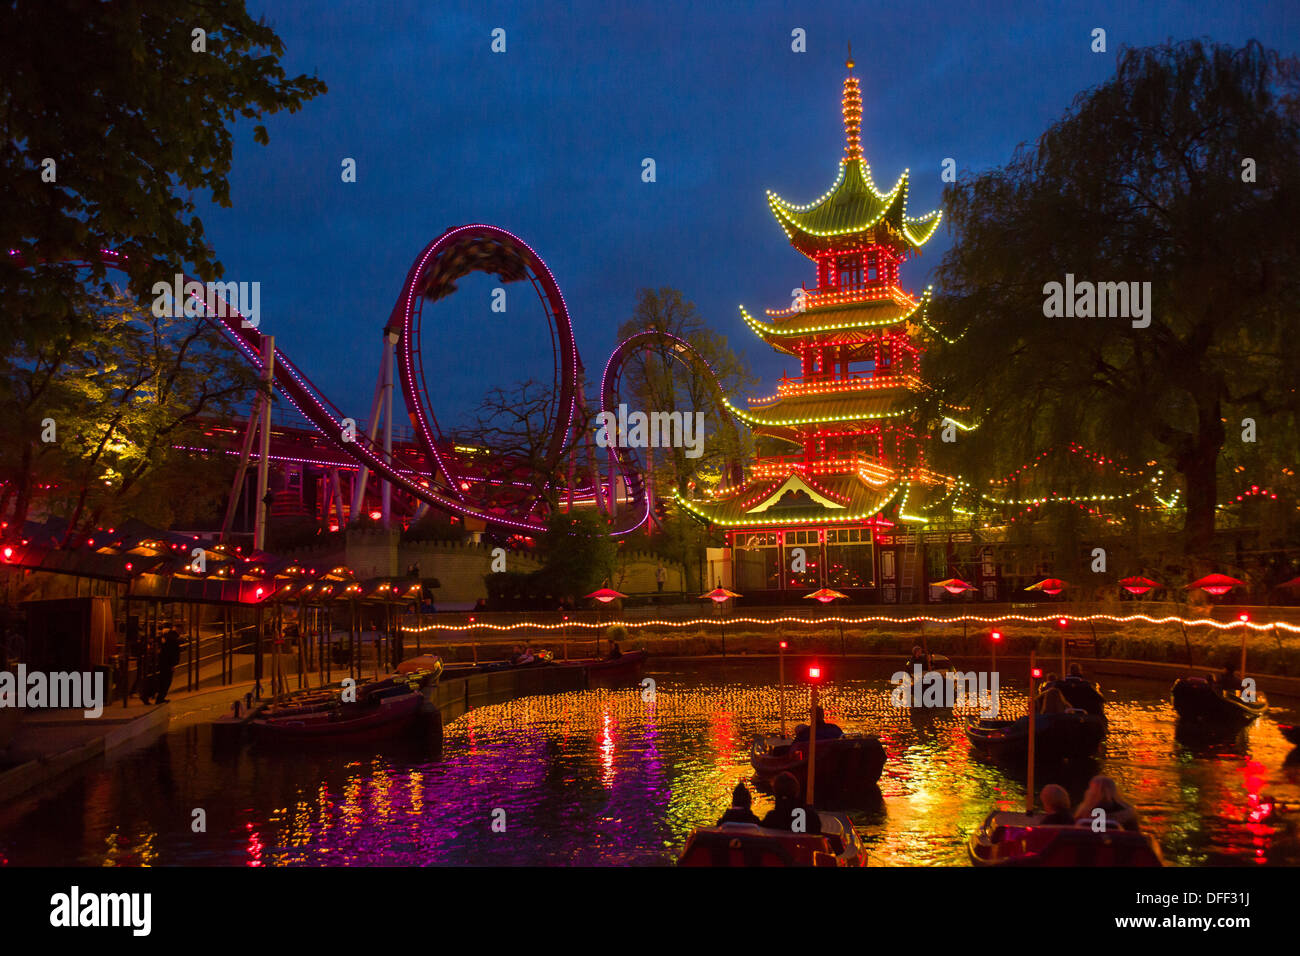 Boating lake in front of the floodlit Chinese Pagoda and Rollercoaster at night, Tivoli Gardens, Copenhagen, Denmark - Stock Image